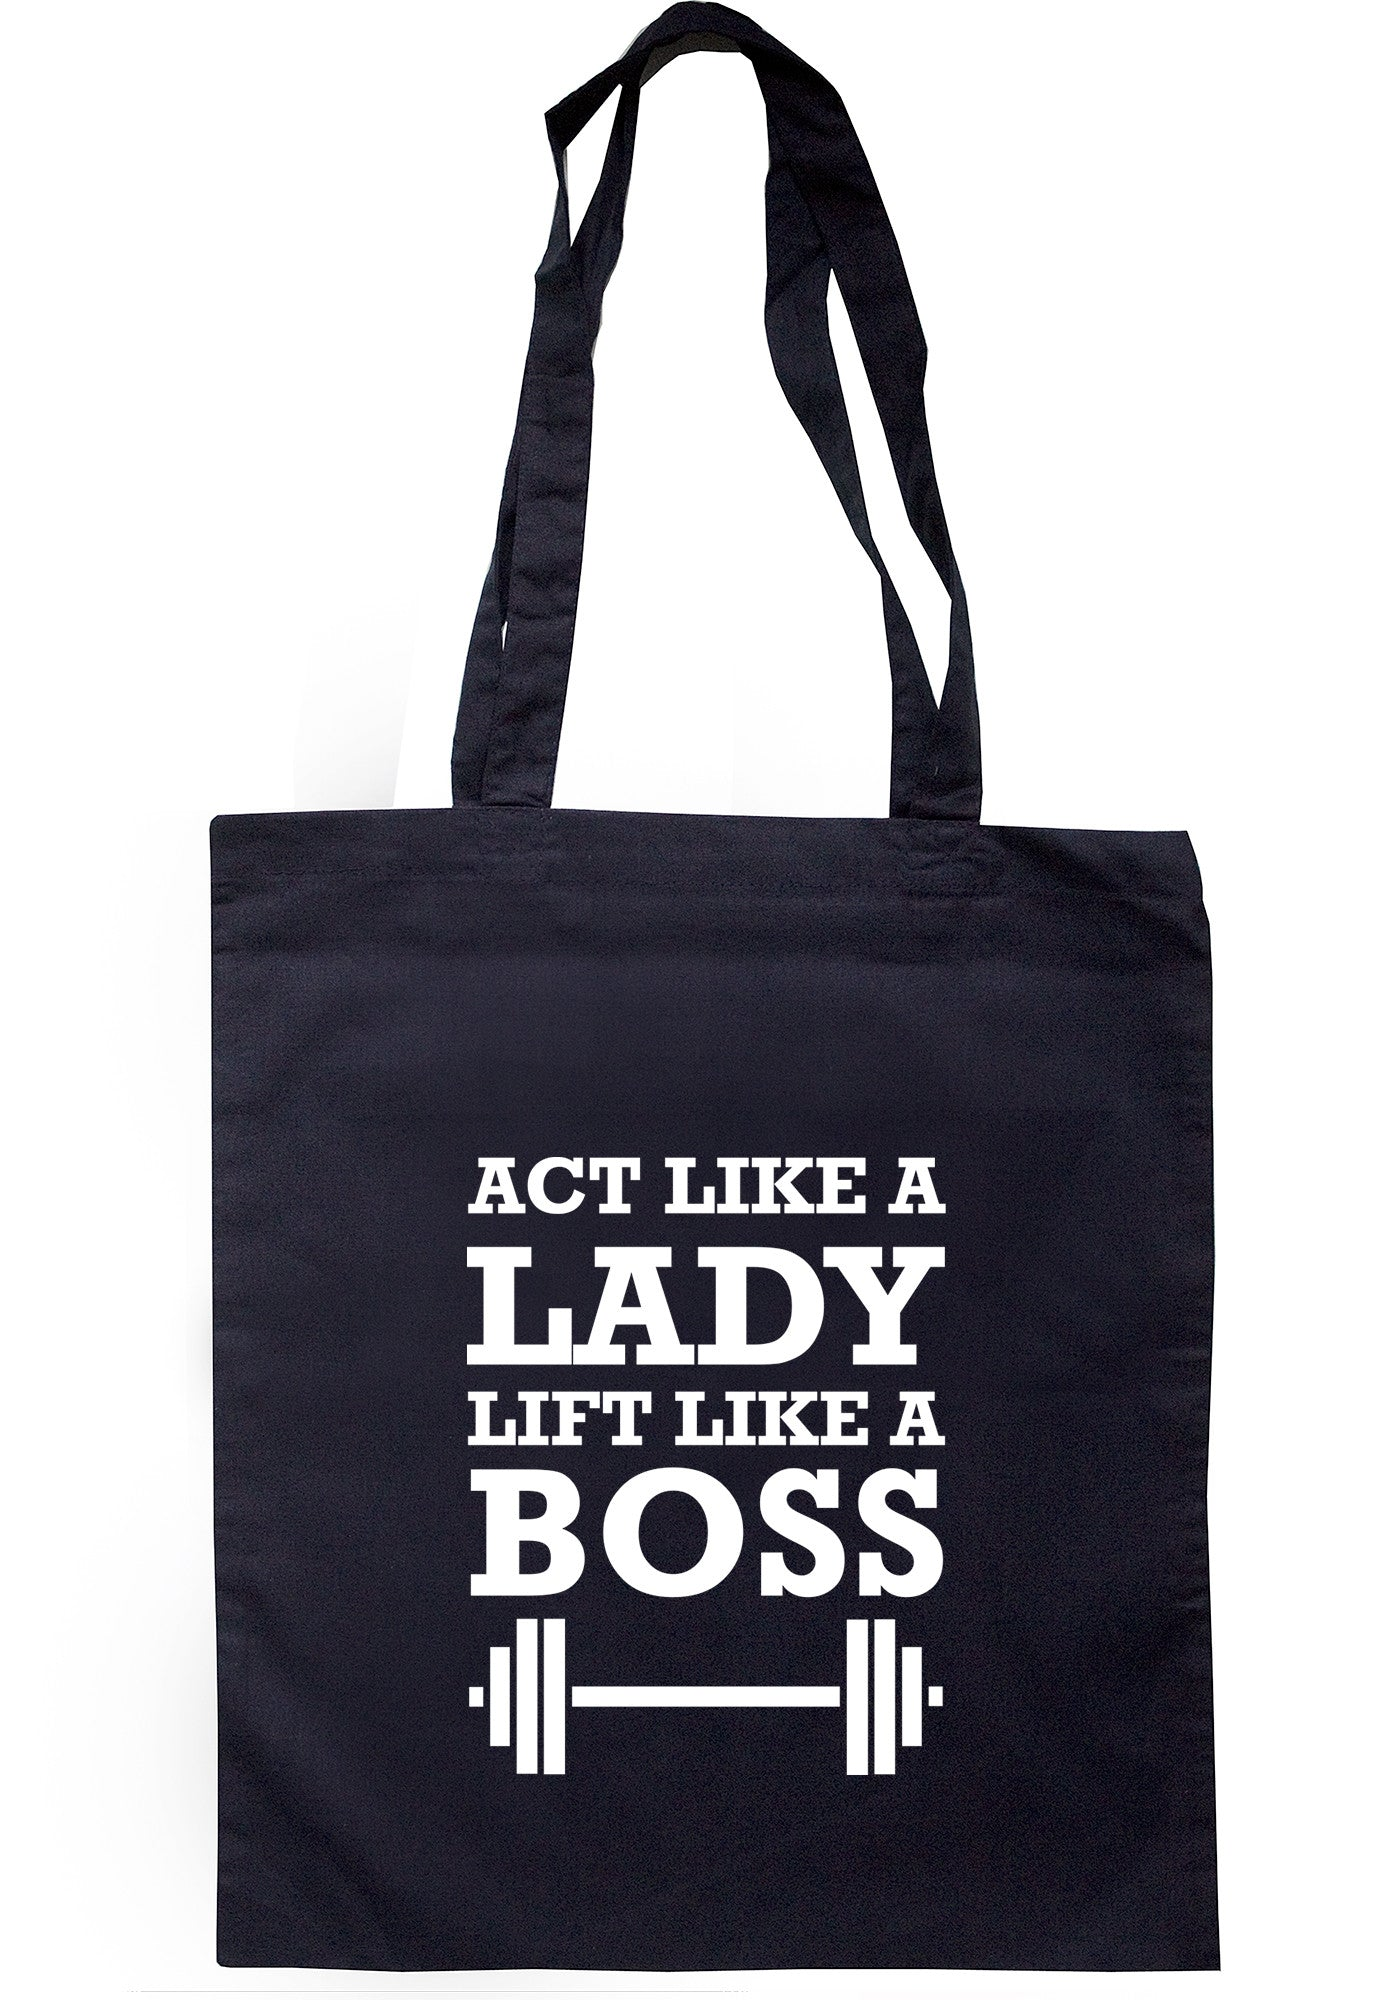 Act Like A Lady Lift Like A Boss Tote Bag TB0359